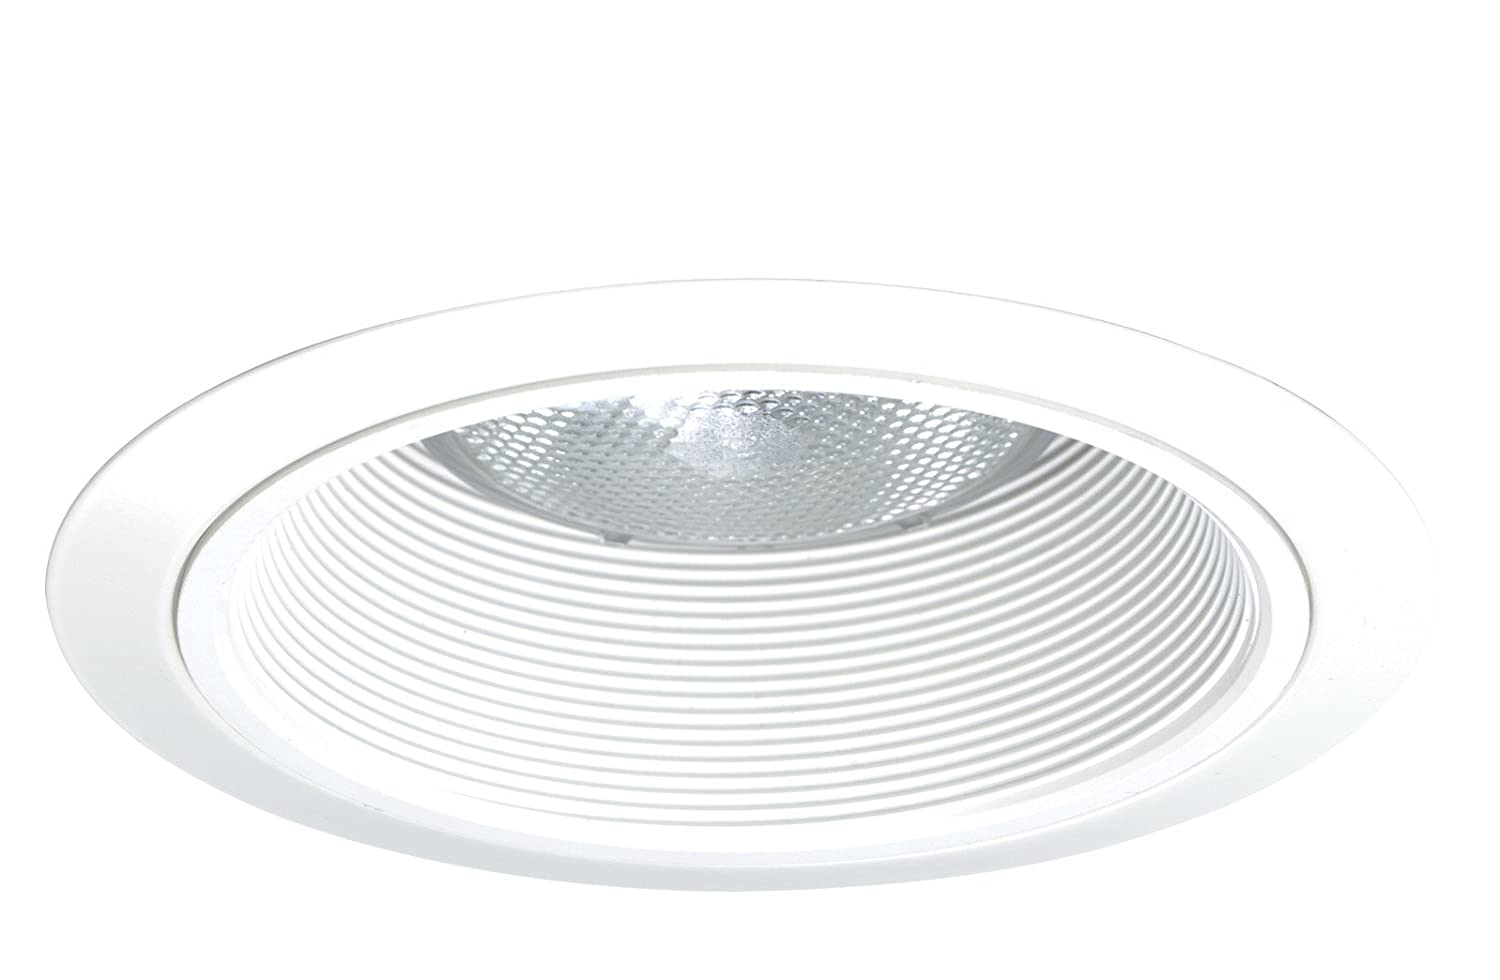 Juno lighting 24w wh 6 inch tapered downlight baffle white with juno lighting 24w wh 6 inch tapered downlight baffle white with white trim close to ceiling light fixtures amazon aloadofball Image collections